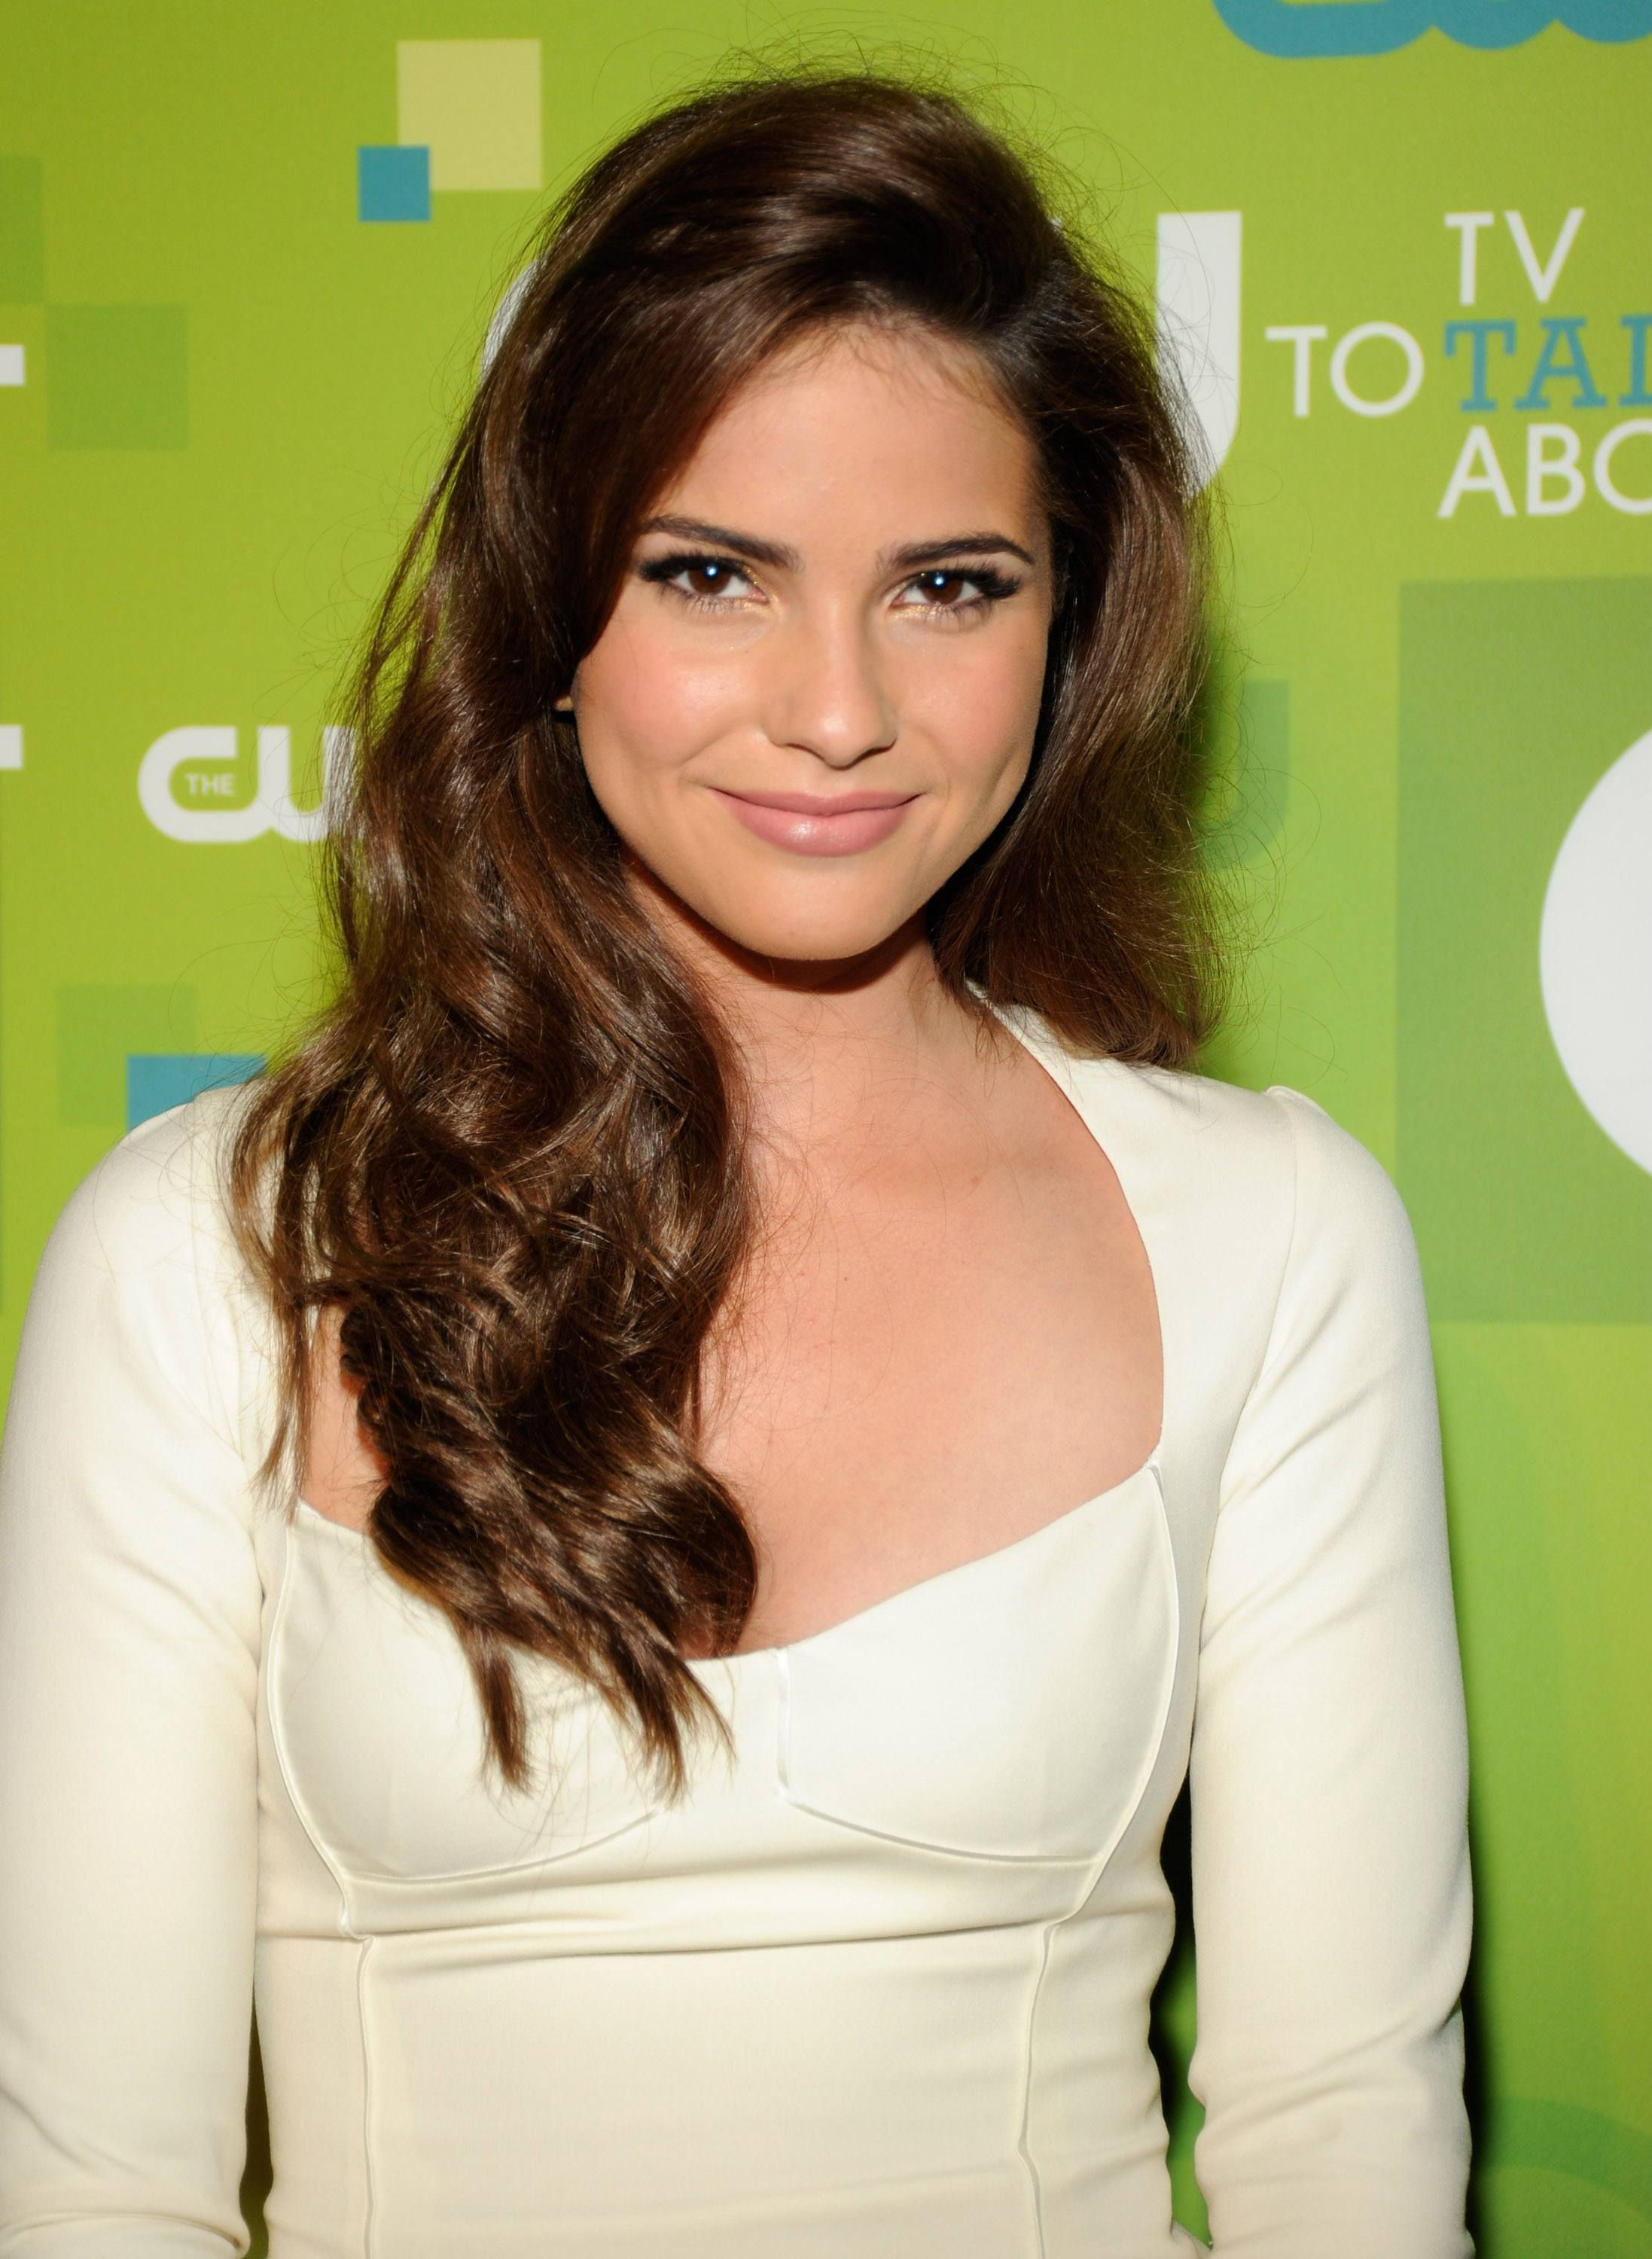 picture Shelley Hennig born January 2, 1987 (age 31)